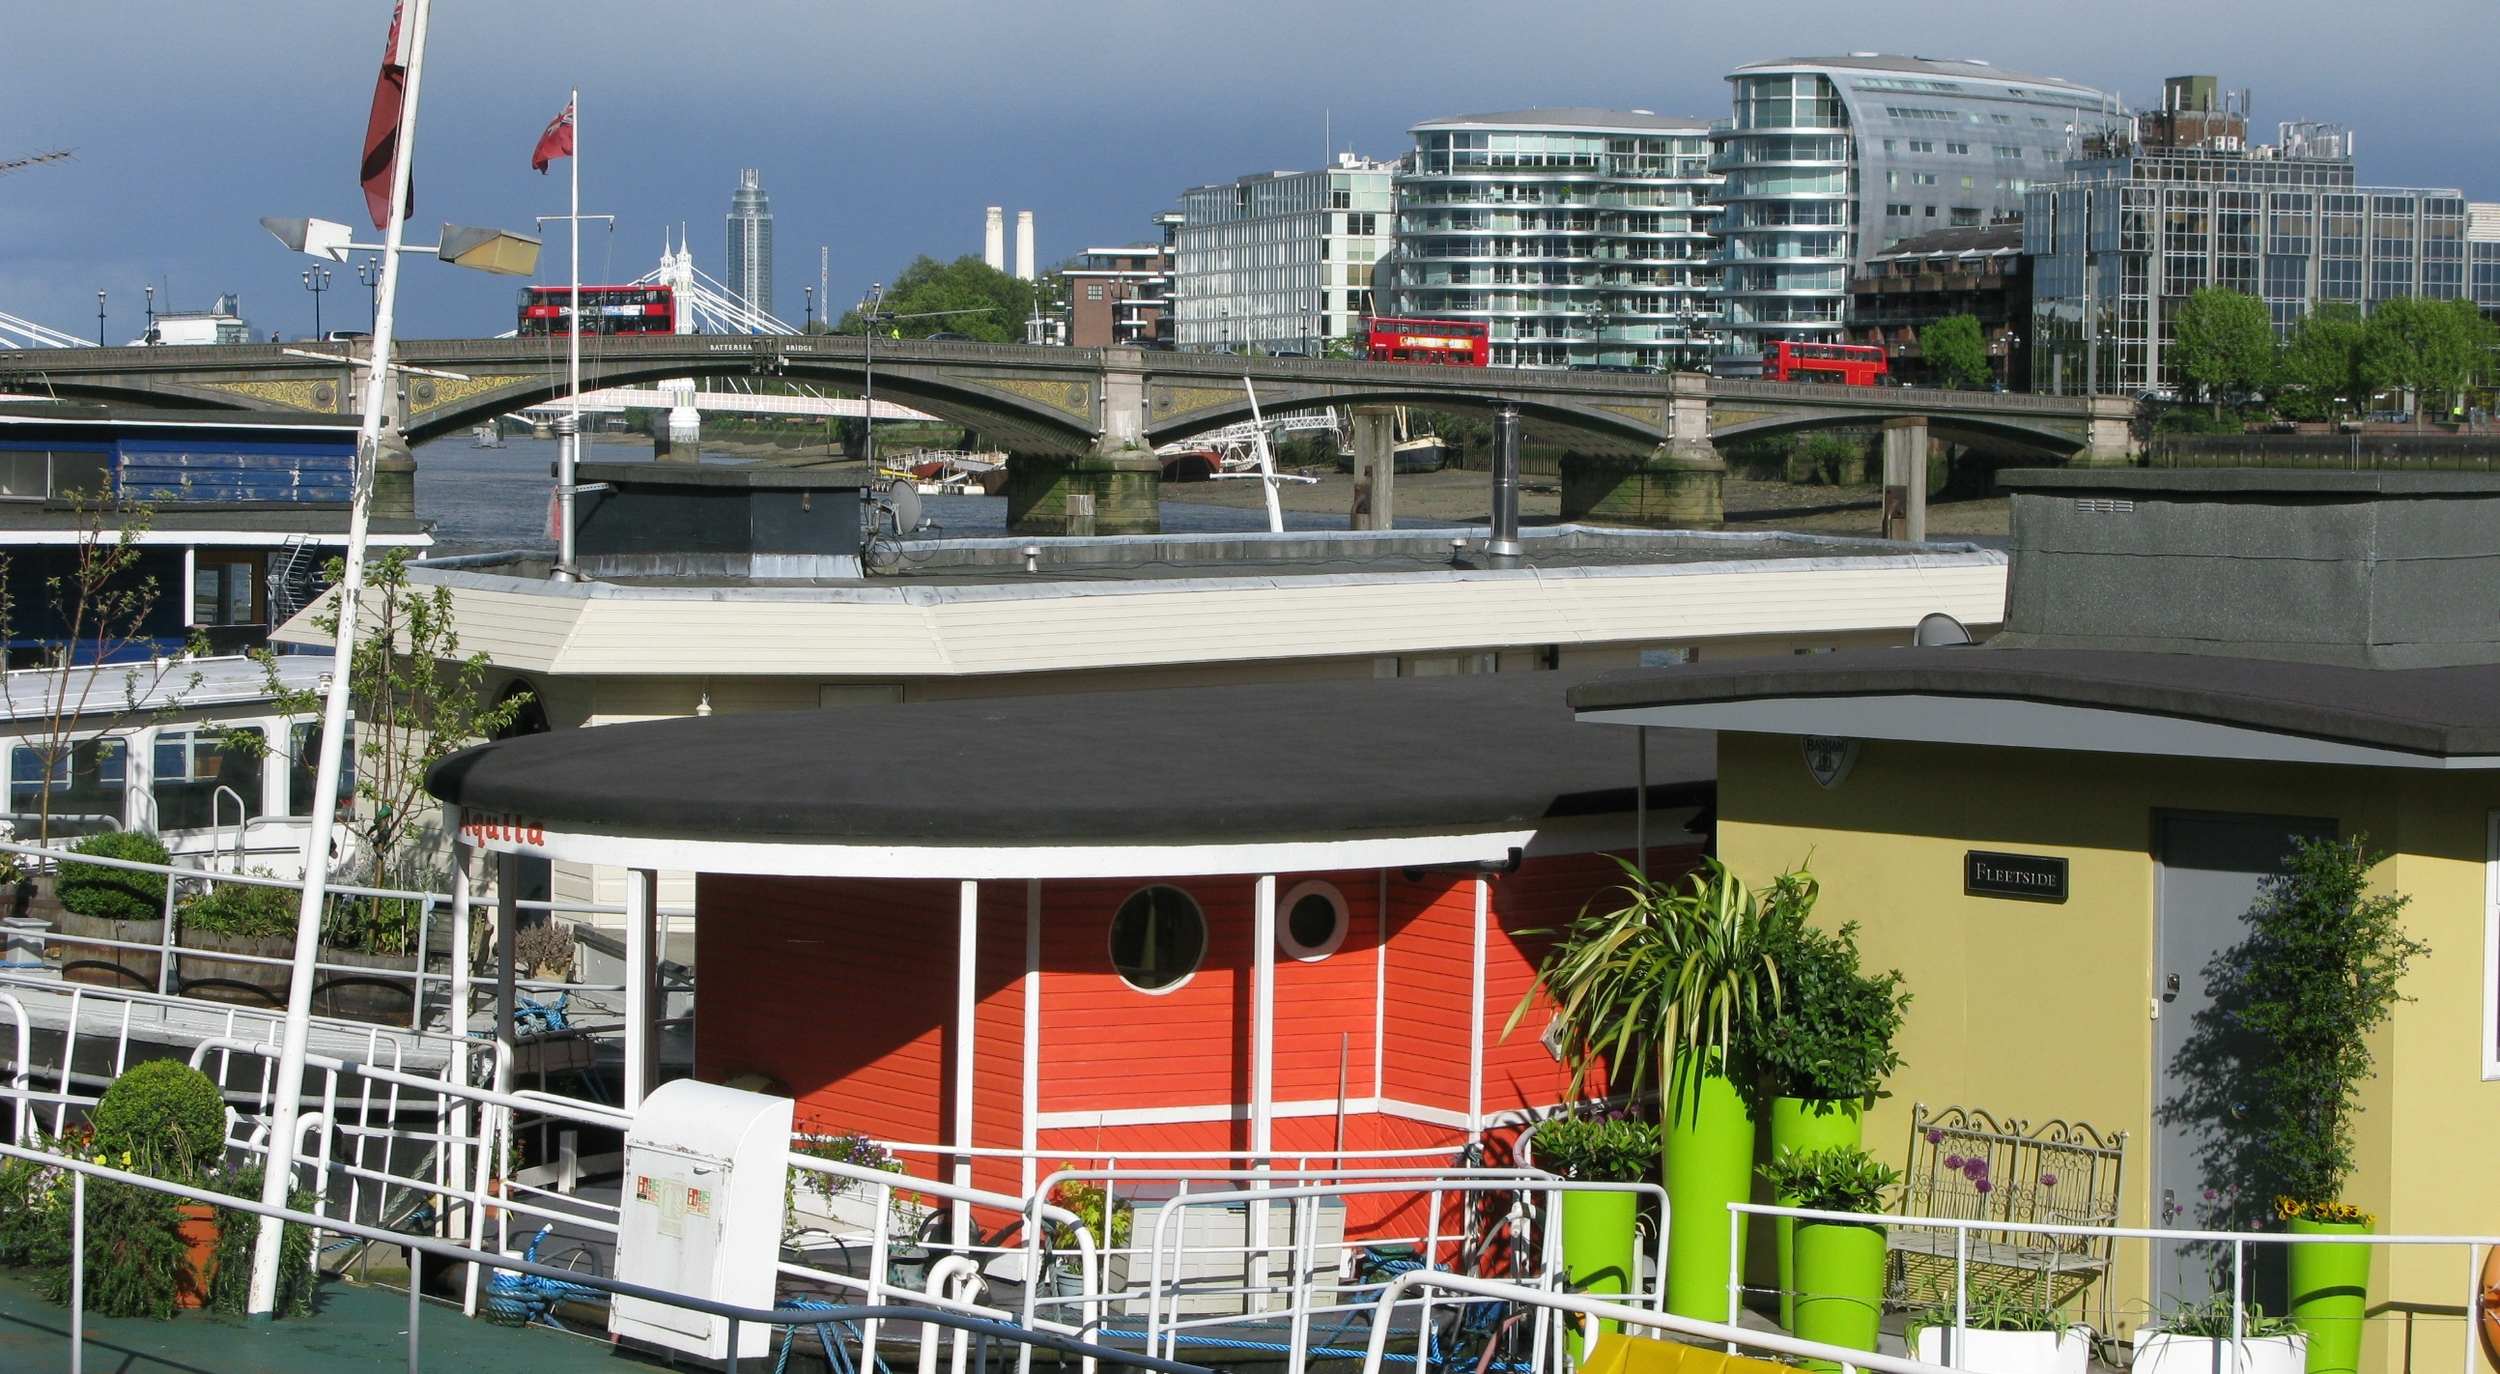 Rows of house boats along the Thames near the Chelsea Flower Show